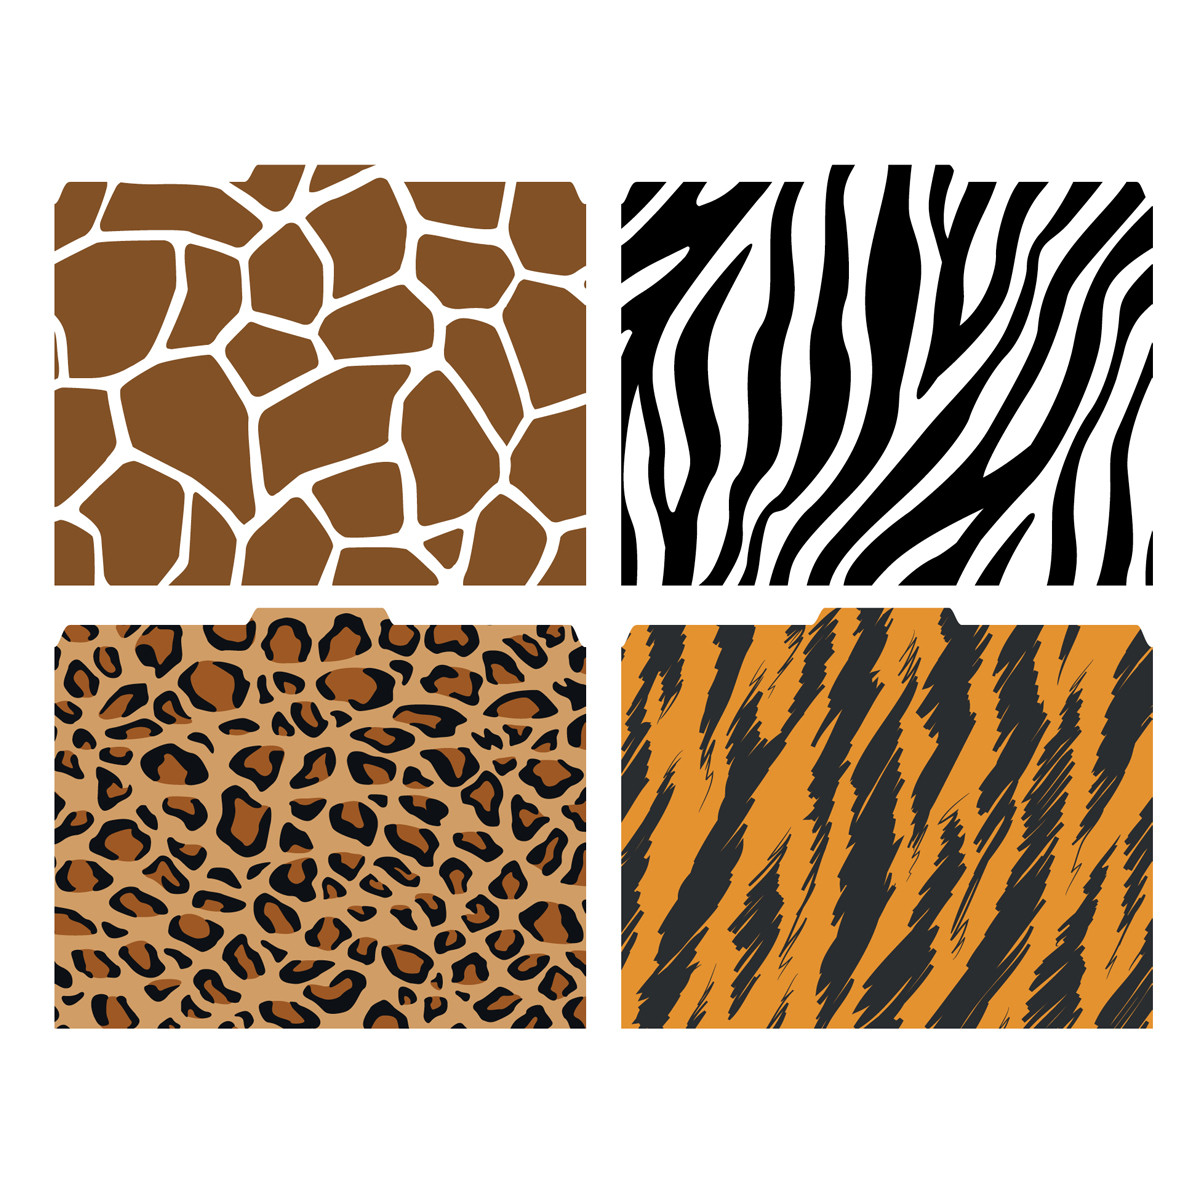 Image shows the four patterns/prints included in this set (Giraffe Zebra